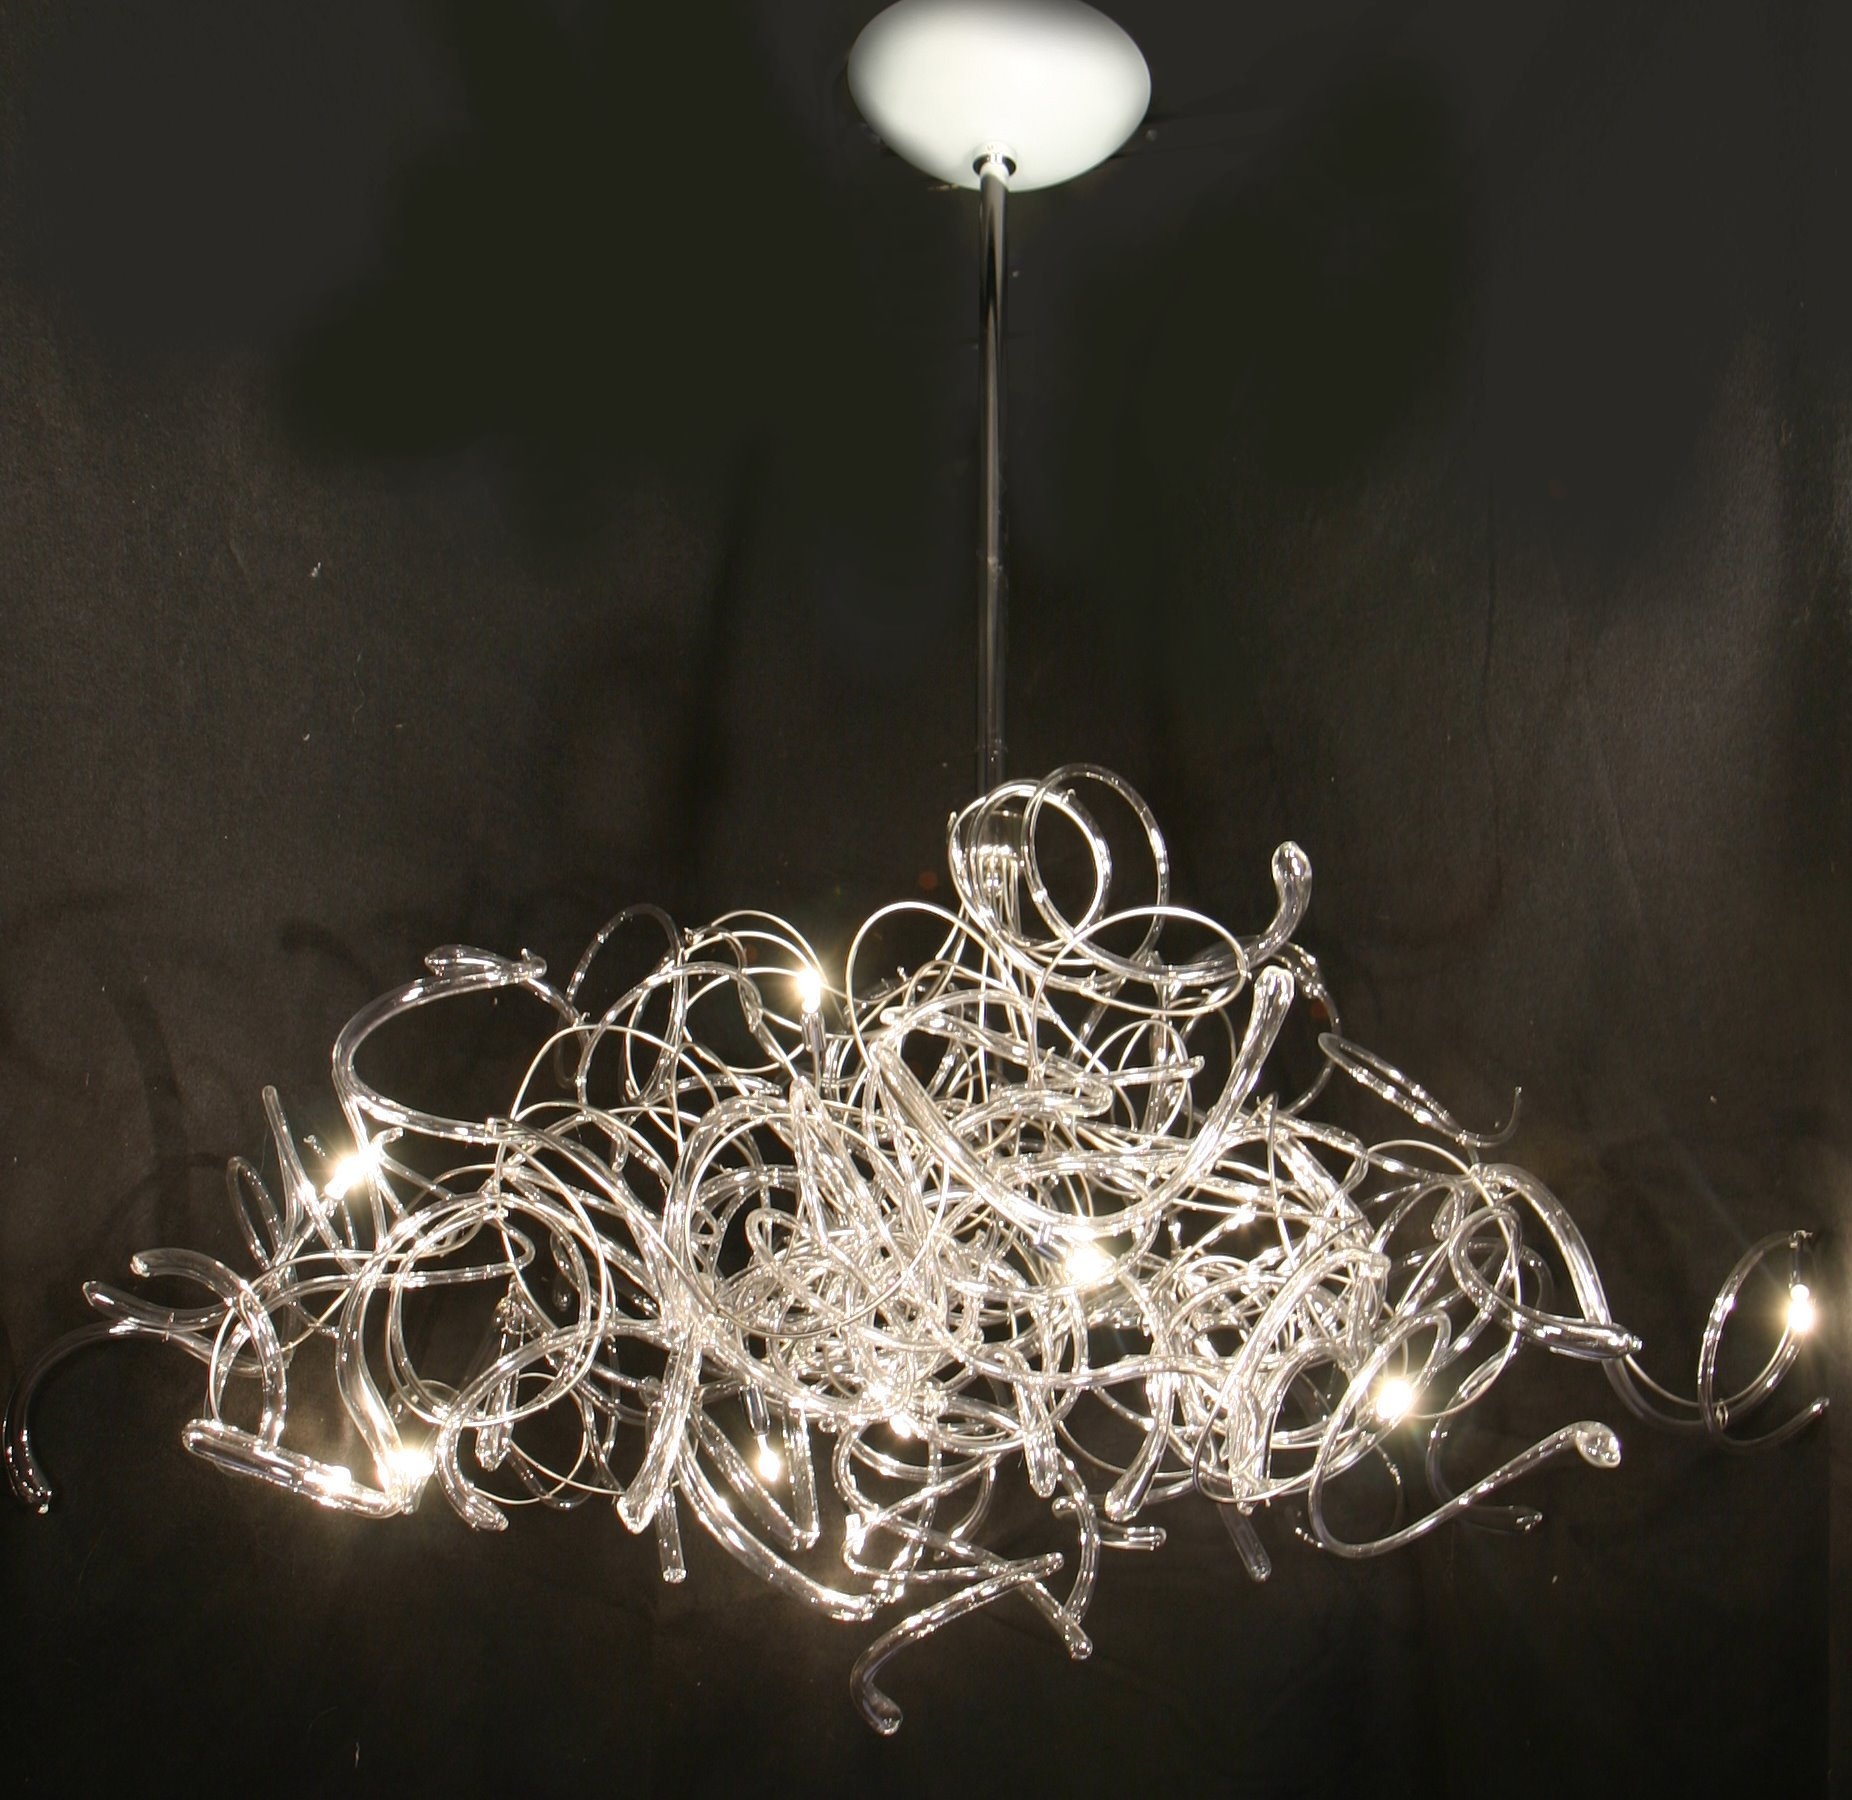 Contemporary Chandelier Lighting In Contemporary Chandelier (Image 11 of 15)